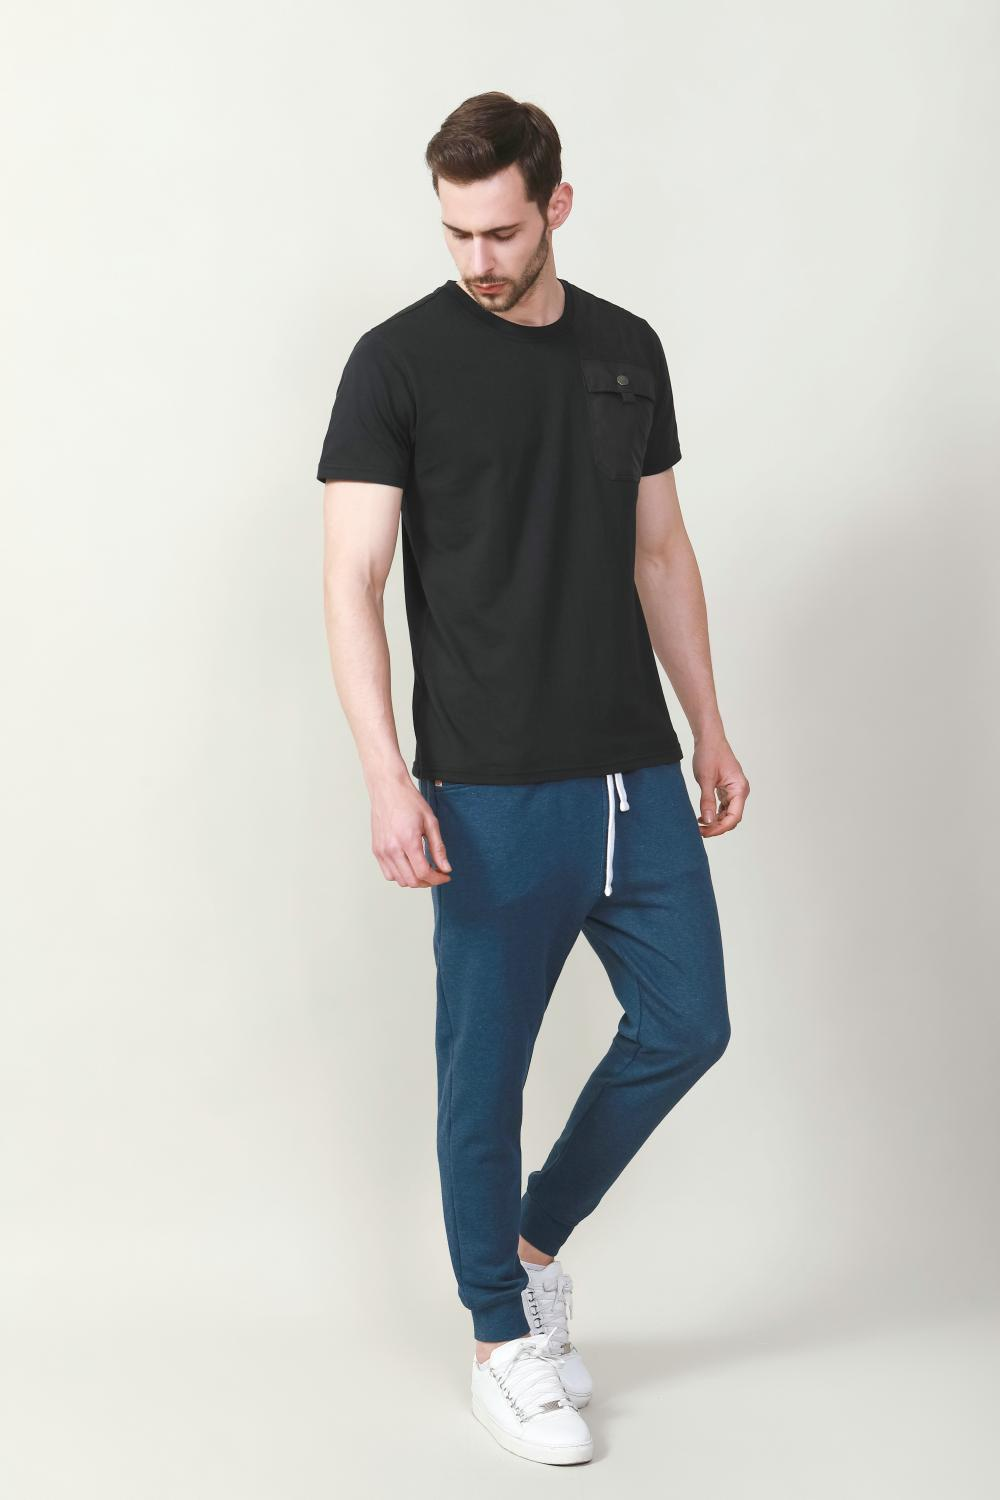 Men's solid color fashion t-shirt